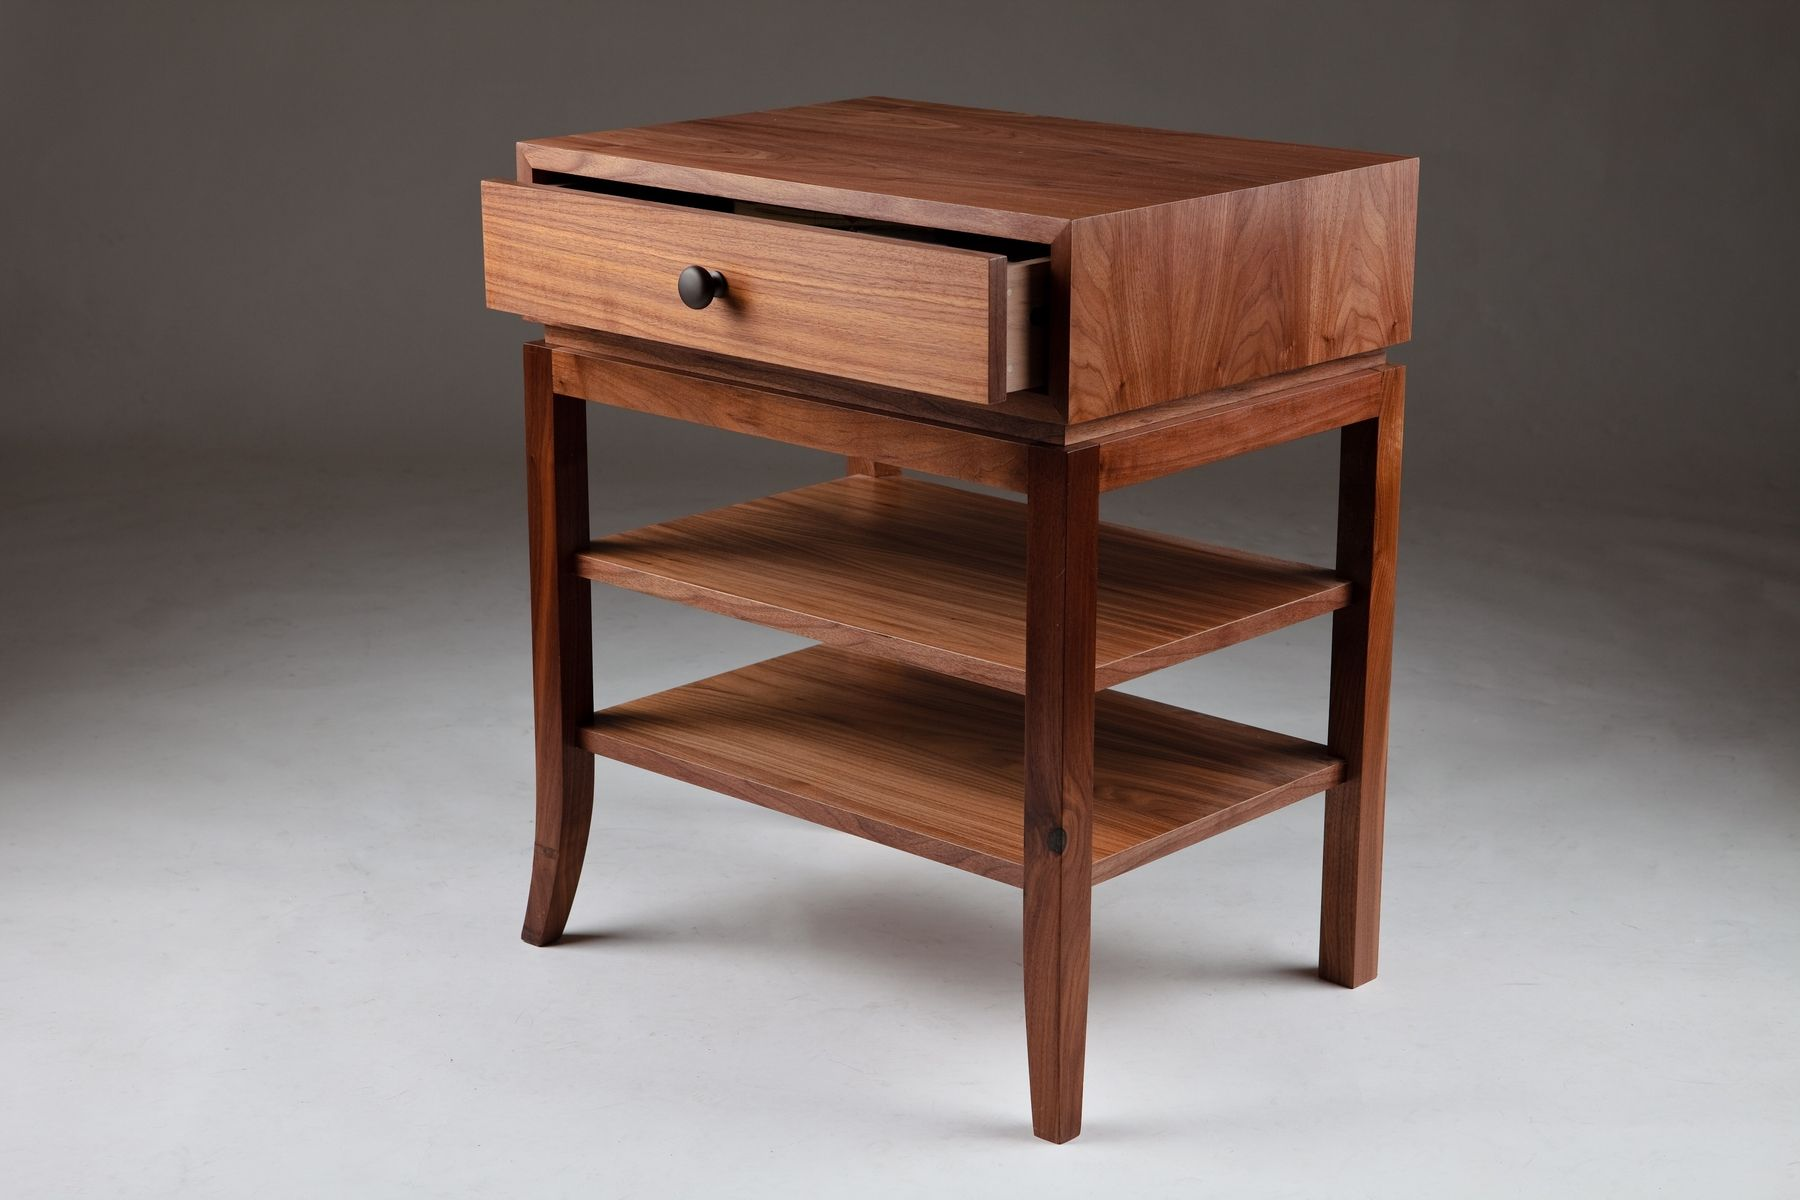 hand made walnut nightstand by bernwood custom design  custommadecom - custom made walnut nightstand